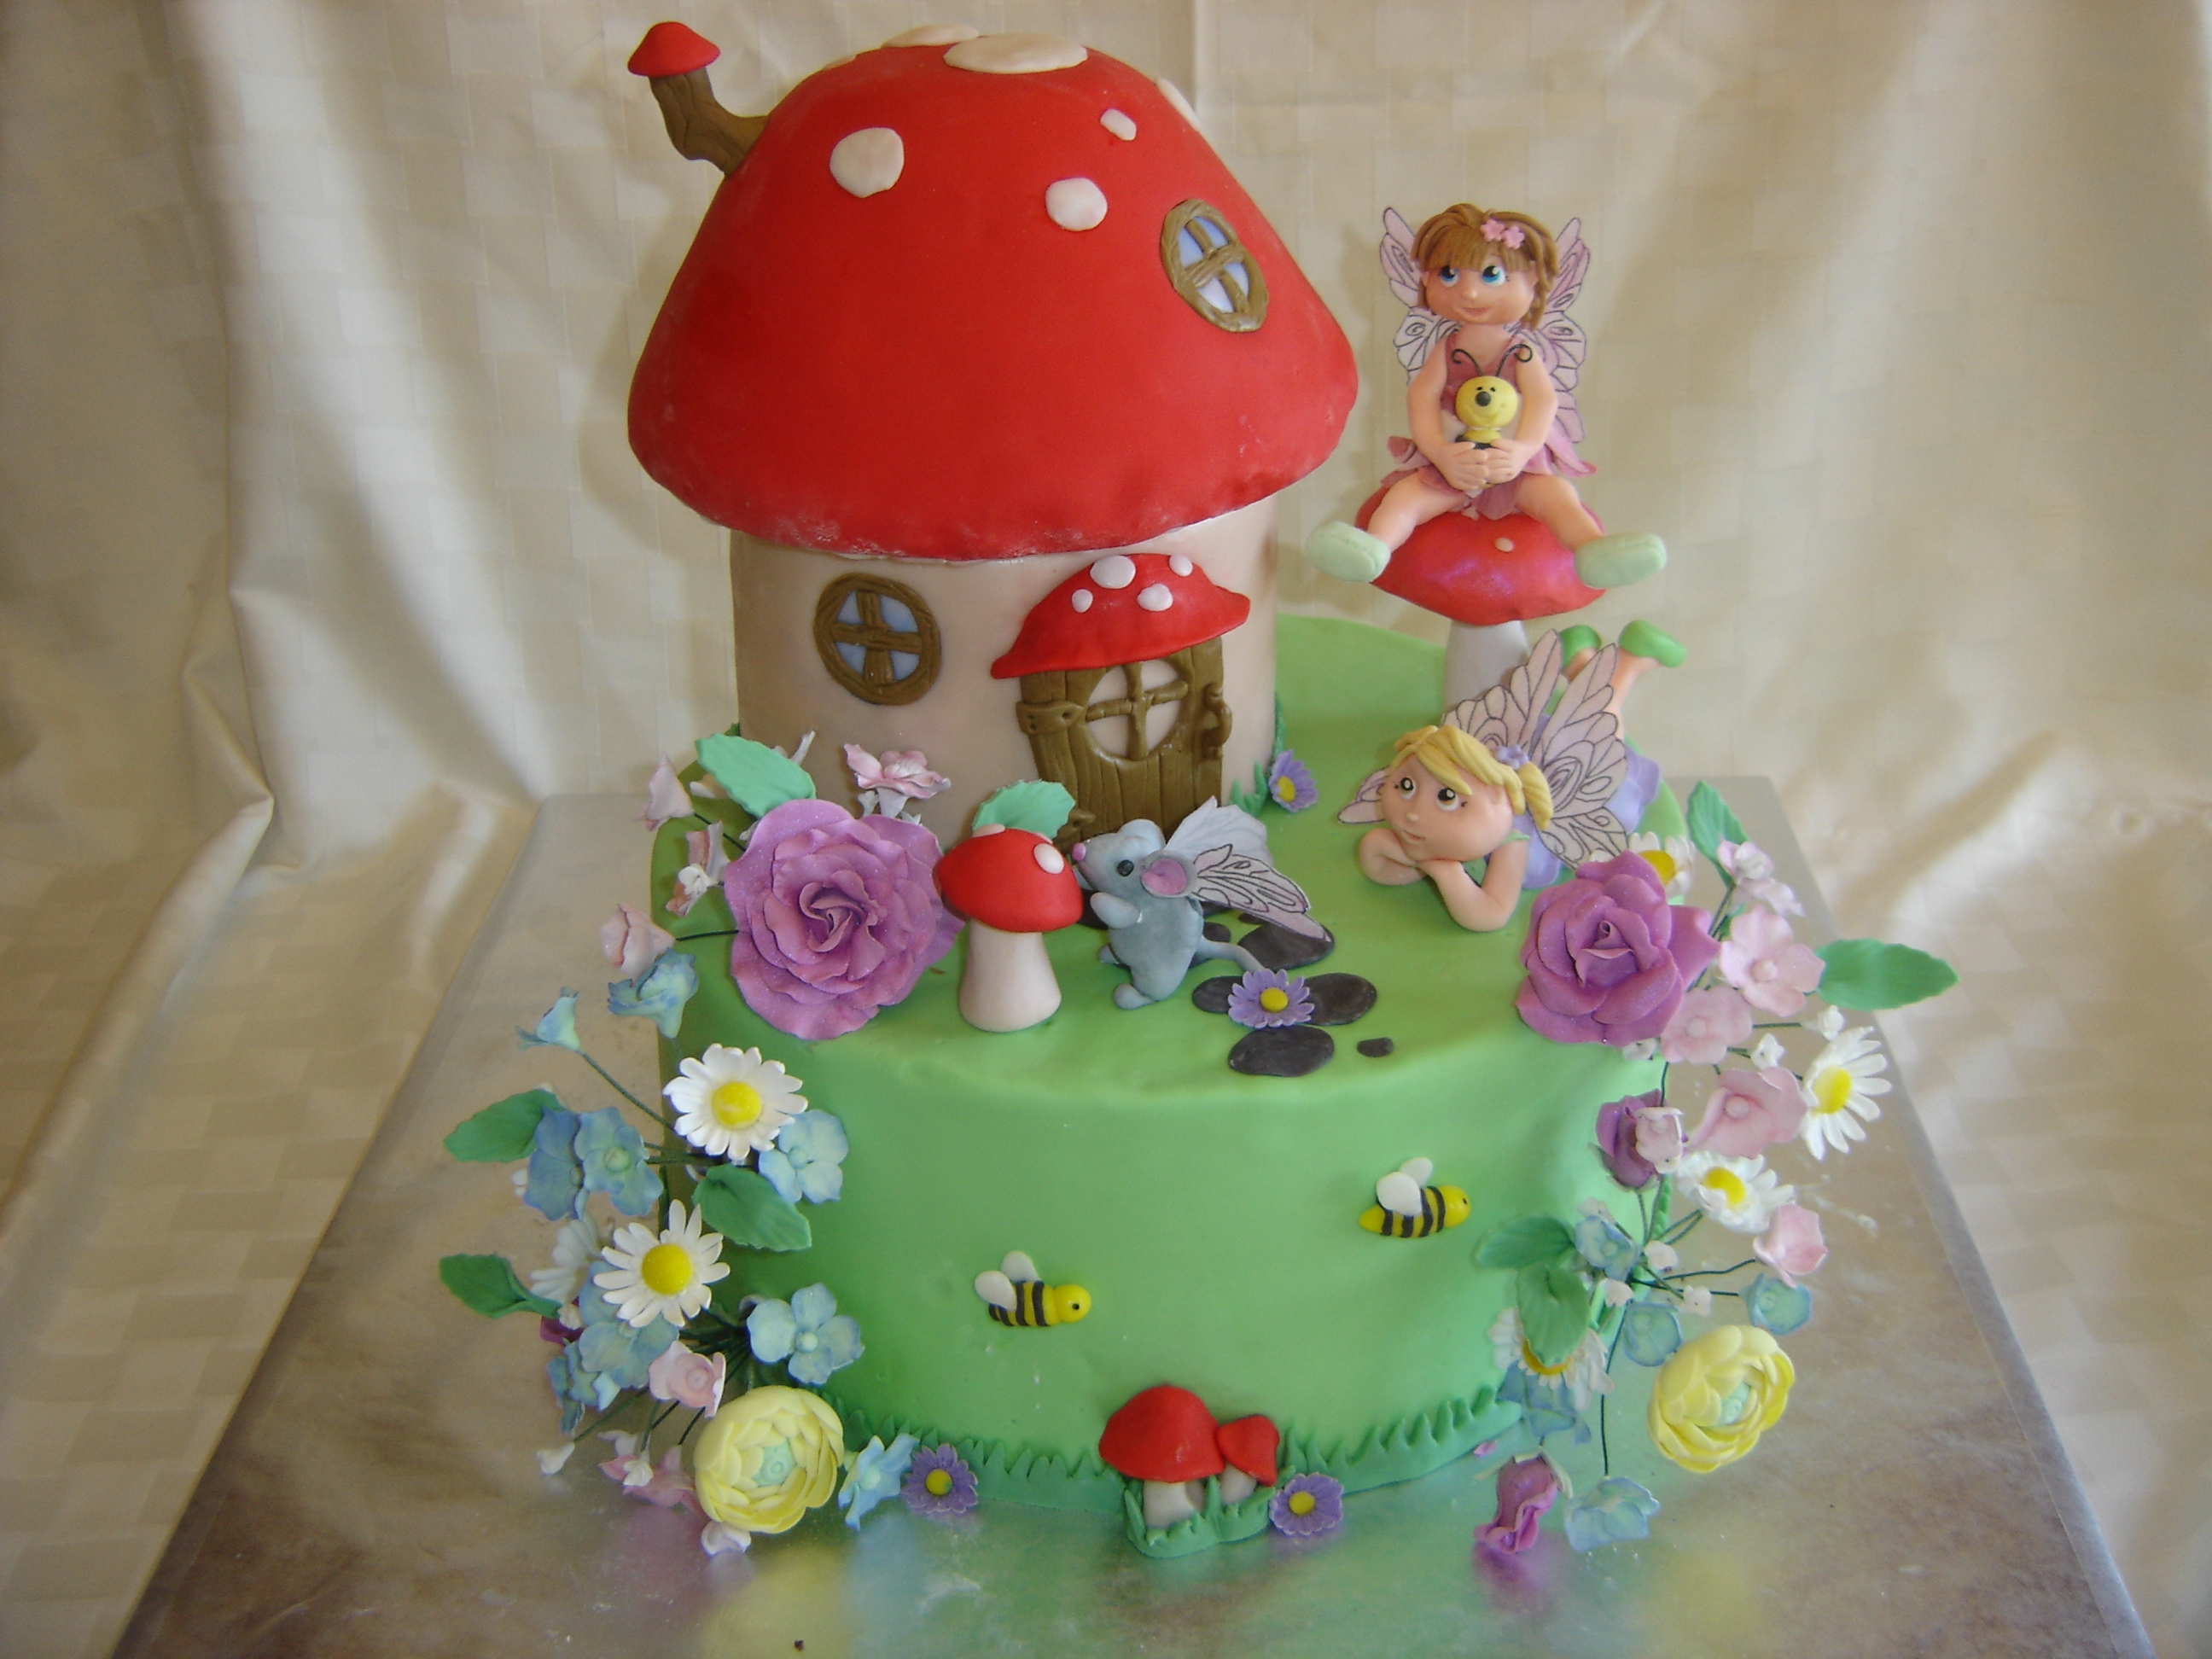 Fairy House Birthday Cake Birthday cake for my daughter...a peek at fairies in their home! House and base are all cake and fondant. Fairies, toadstools and flowers...